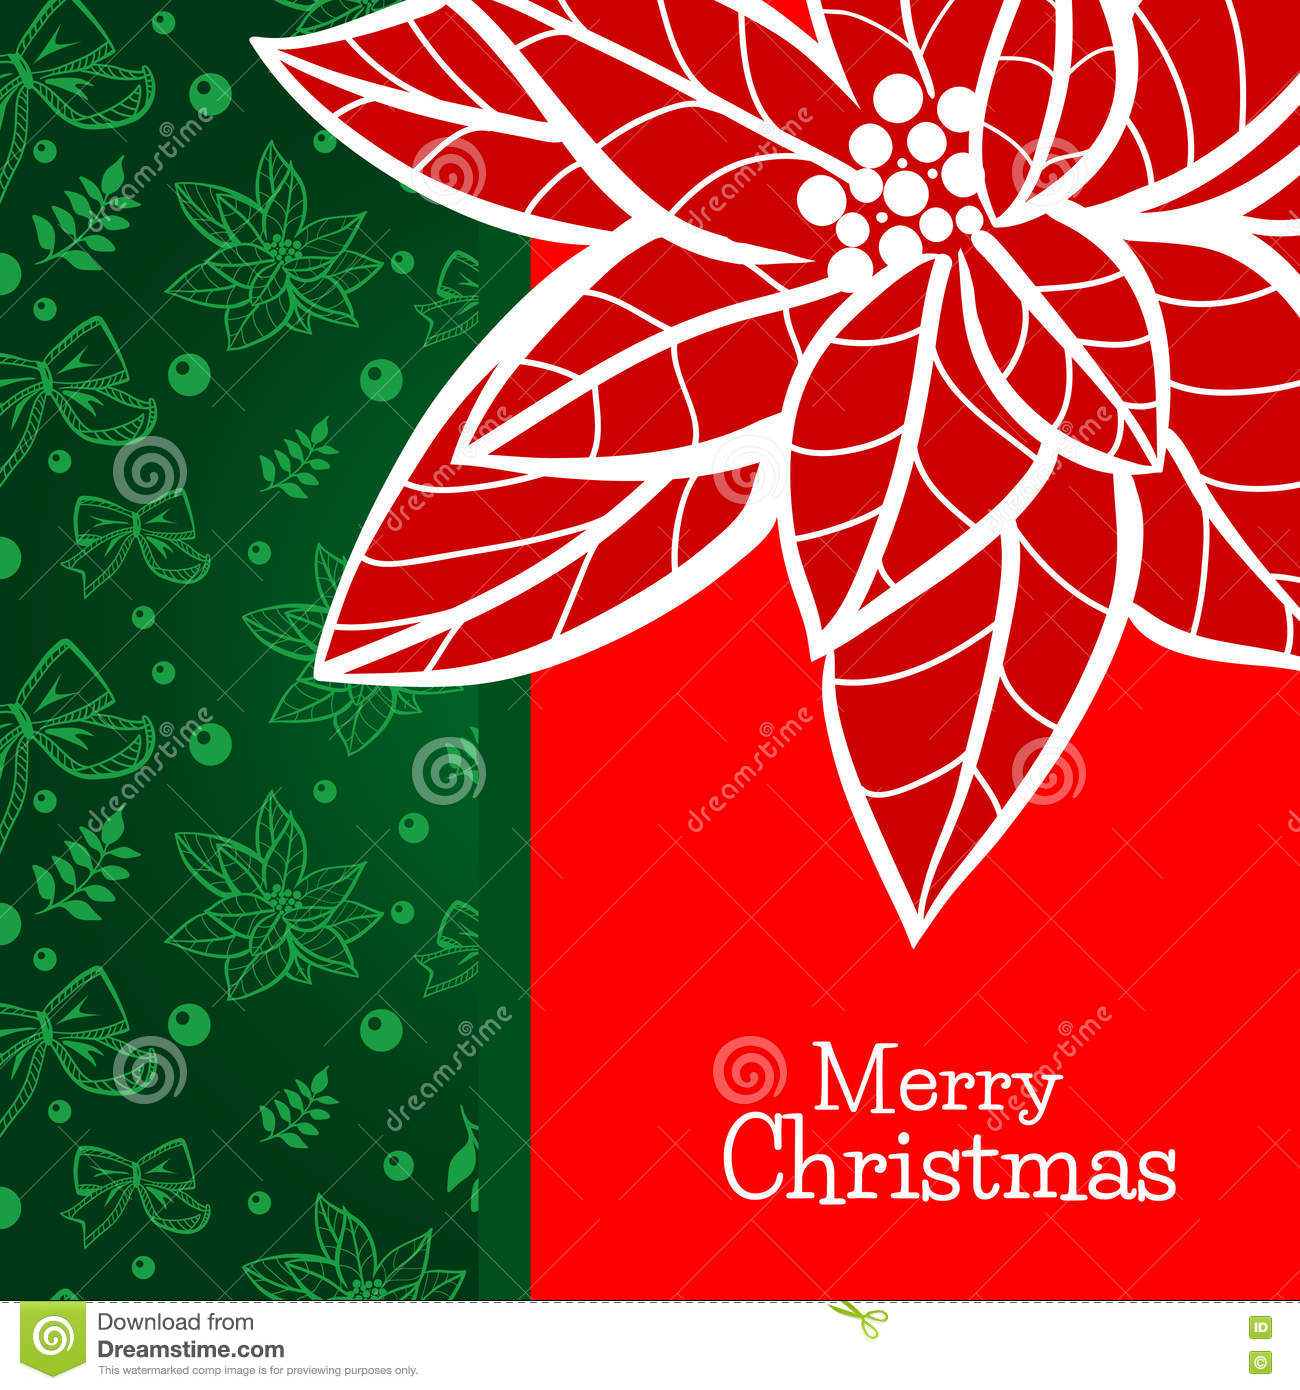 Christmas And New Year Greeting Card Template With Hand Drawn – New Year Greeting Card Template